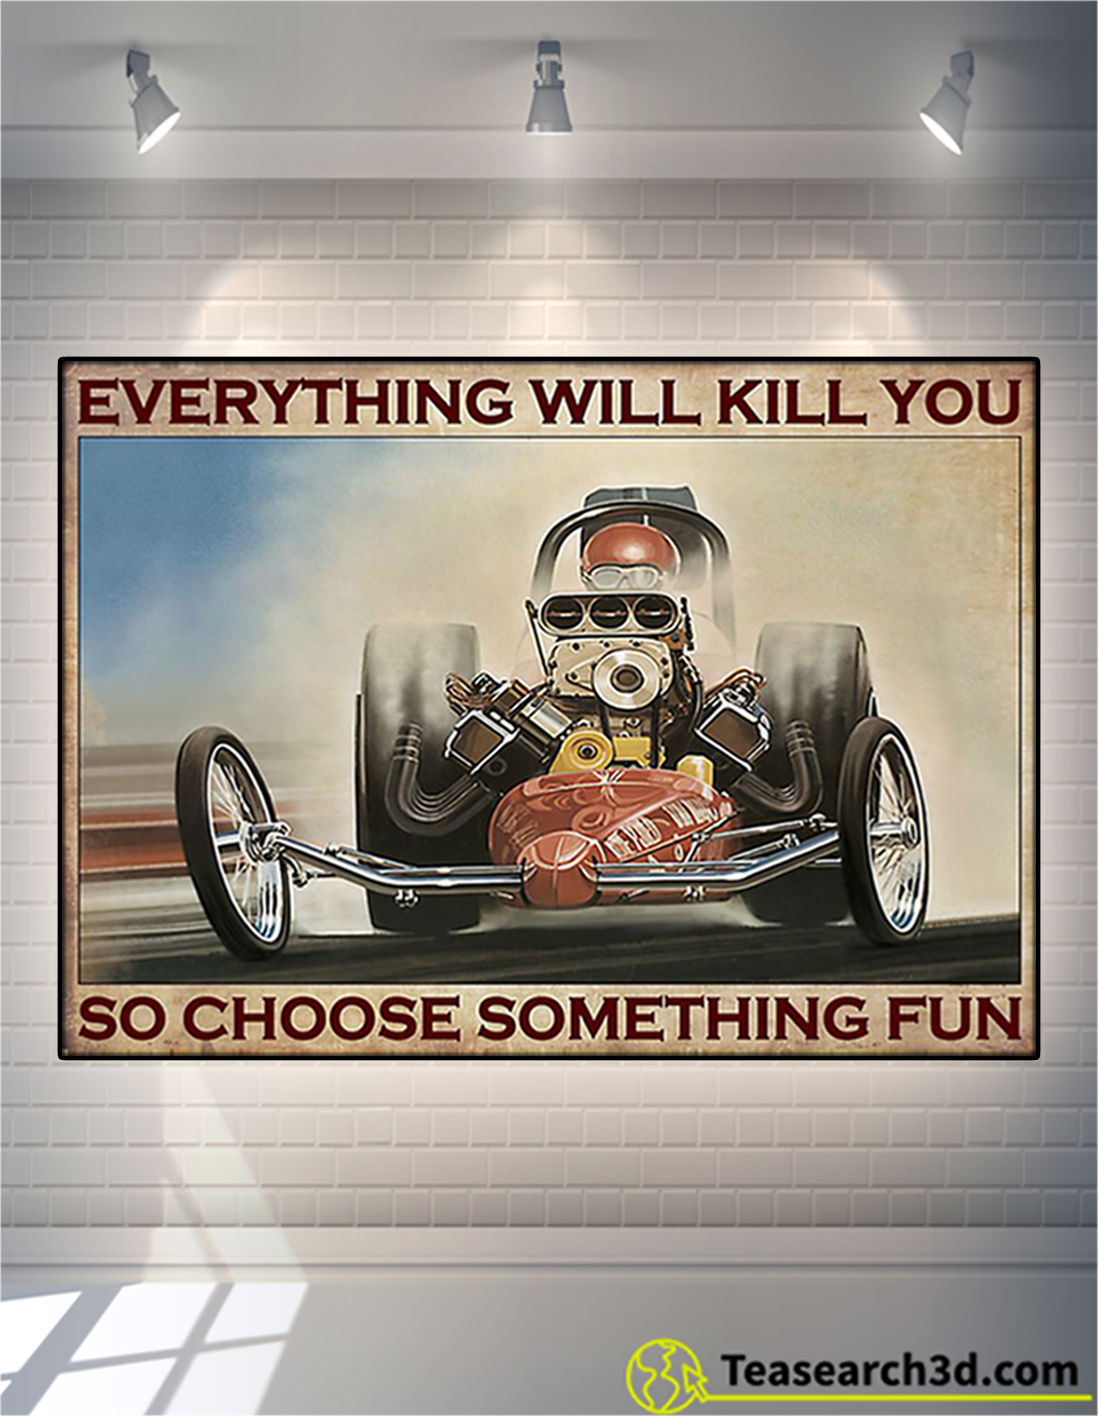 Everything will kill you so choose something fun drag racing poster A2